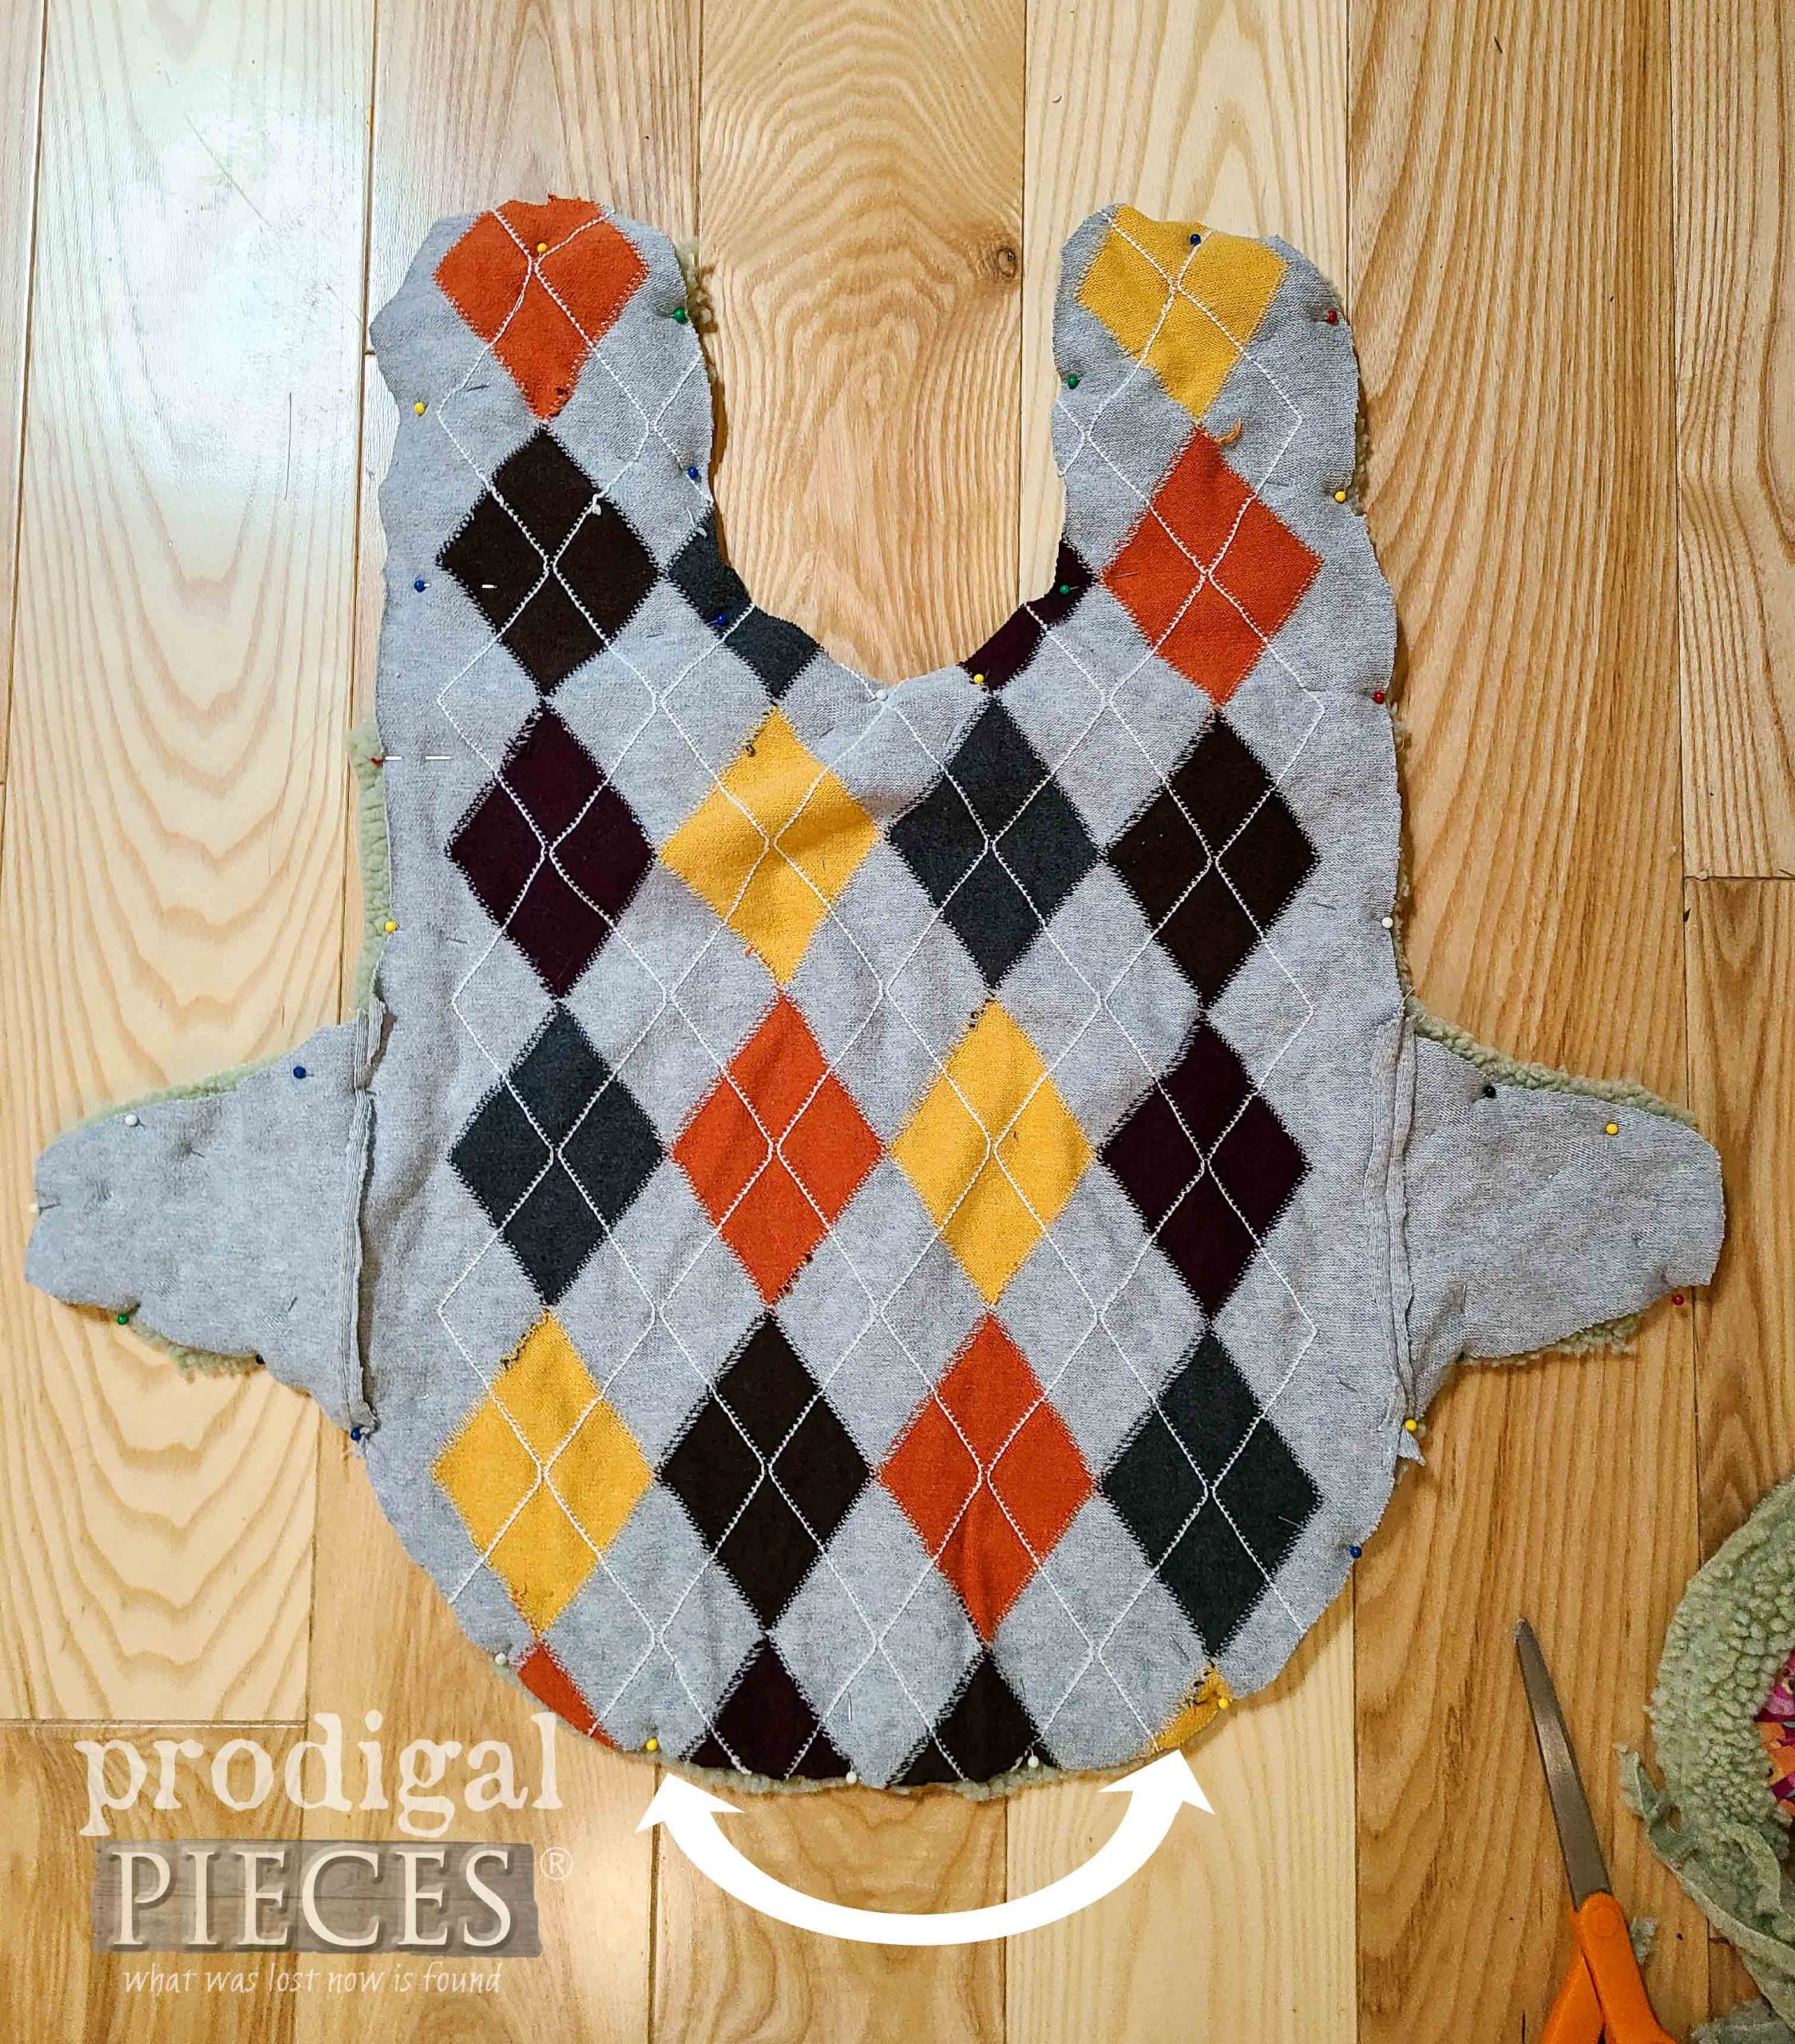 Stitch Pattern for DIY Dog Coat from Upcycled Sweaters by Larissa of Prodigal Pieces | prodigalpieces.com